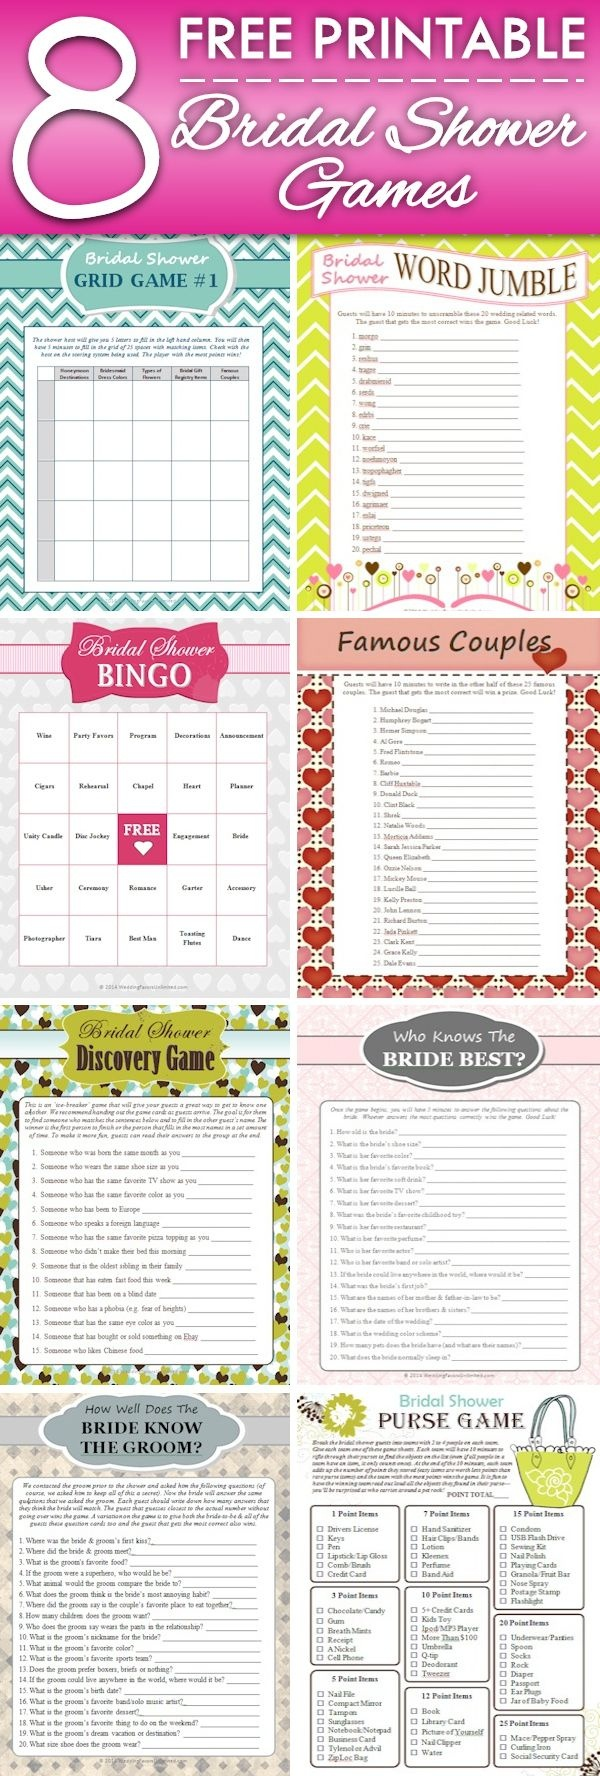 8 Free Printable Bridal Shower Games - Download Some Fun Today! | My - Free Printable Bridal Shower Games And Activities